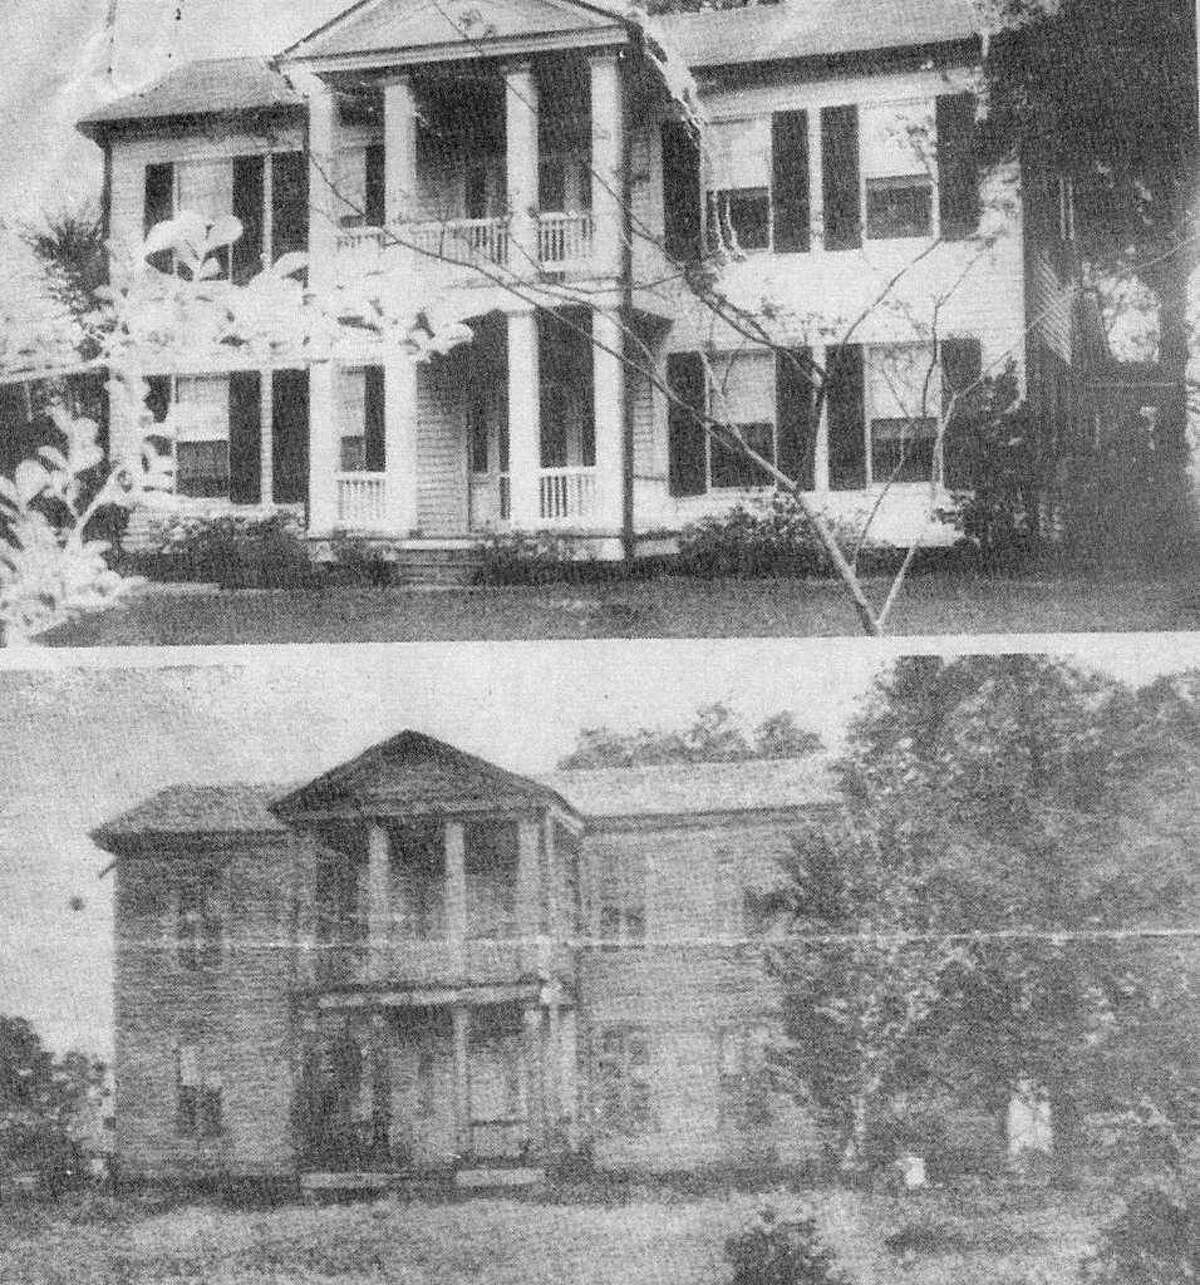 """In 1854 Peter and Caroline Willis engaged local builder John Shelton to build an impressive home on College Street in Montgomery. The home was called """"Magnolia,"""" named for their daughter who was born in the house on June 15, 1854. Visitors to the home included General Sam Houston, the hero of the Texas Revolution, and Charles B. Stewart, local political and civic leader who designed the Lone Star Flag."""